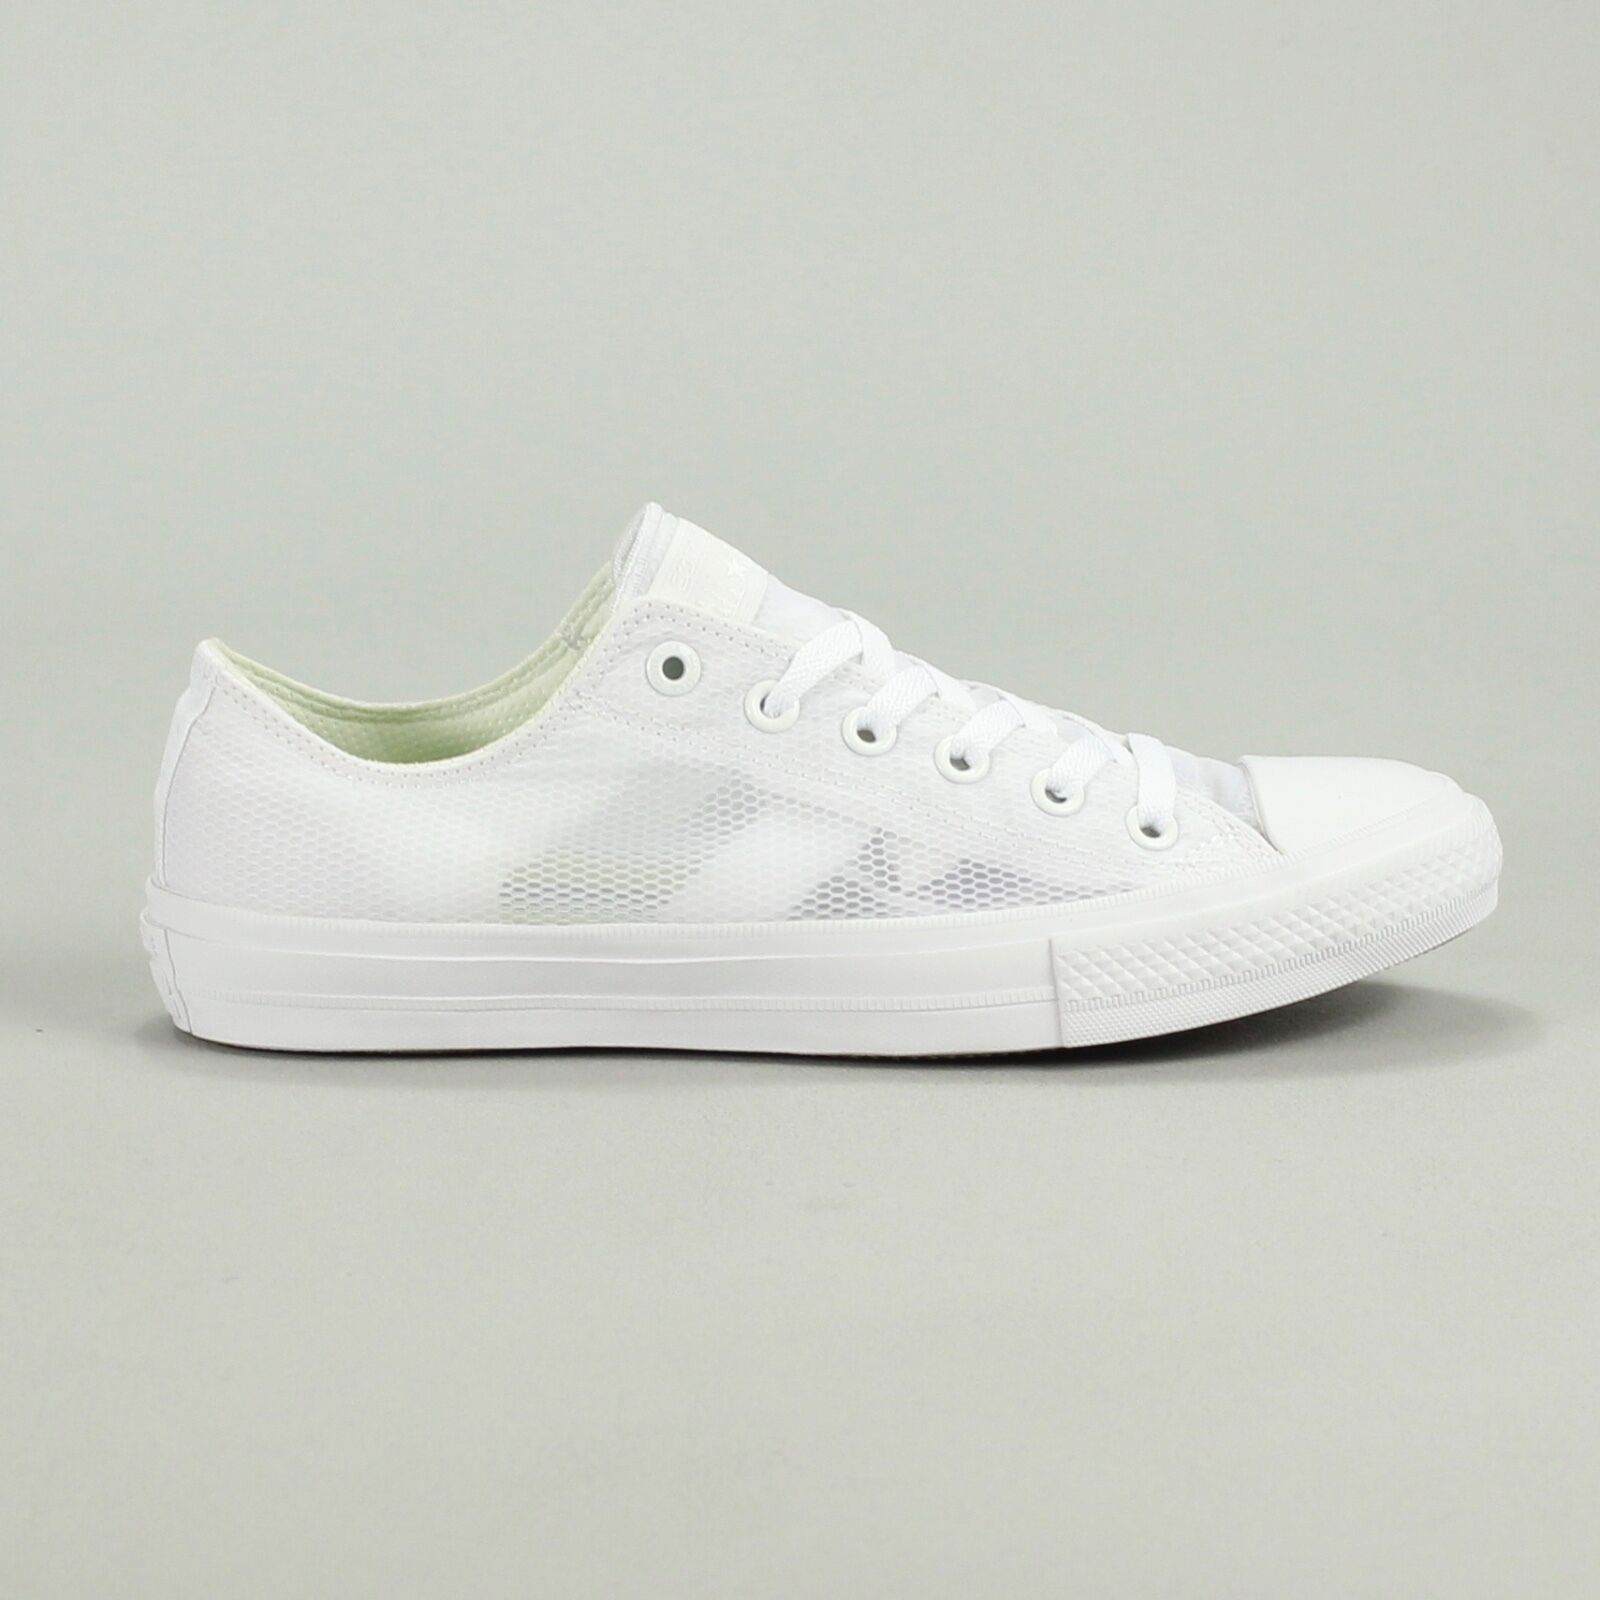 WHITE ALL STAR CONVERSE Taglia 4 con scatola